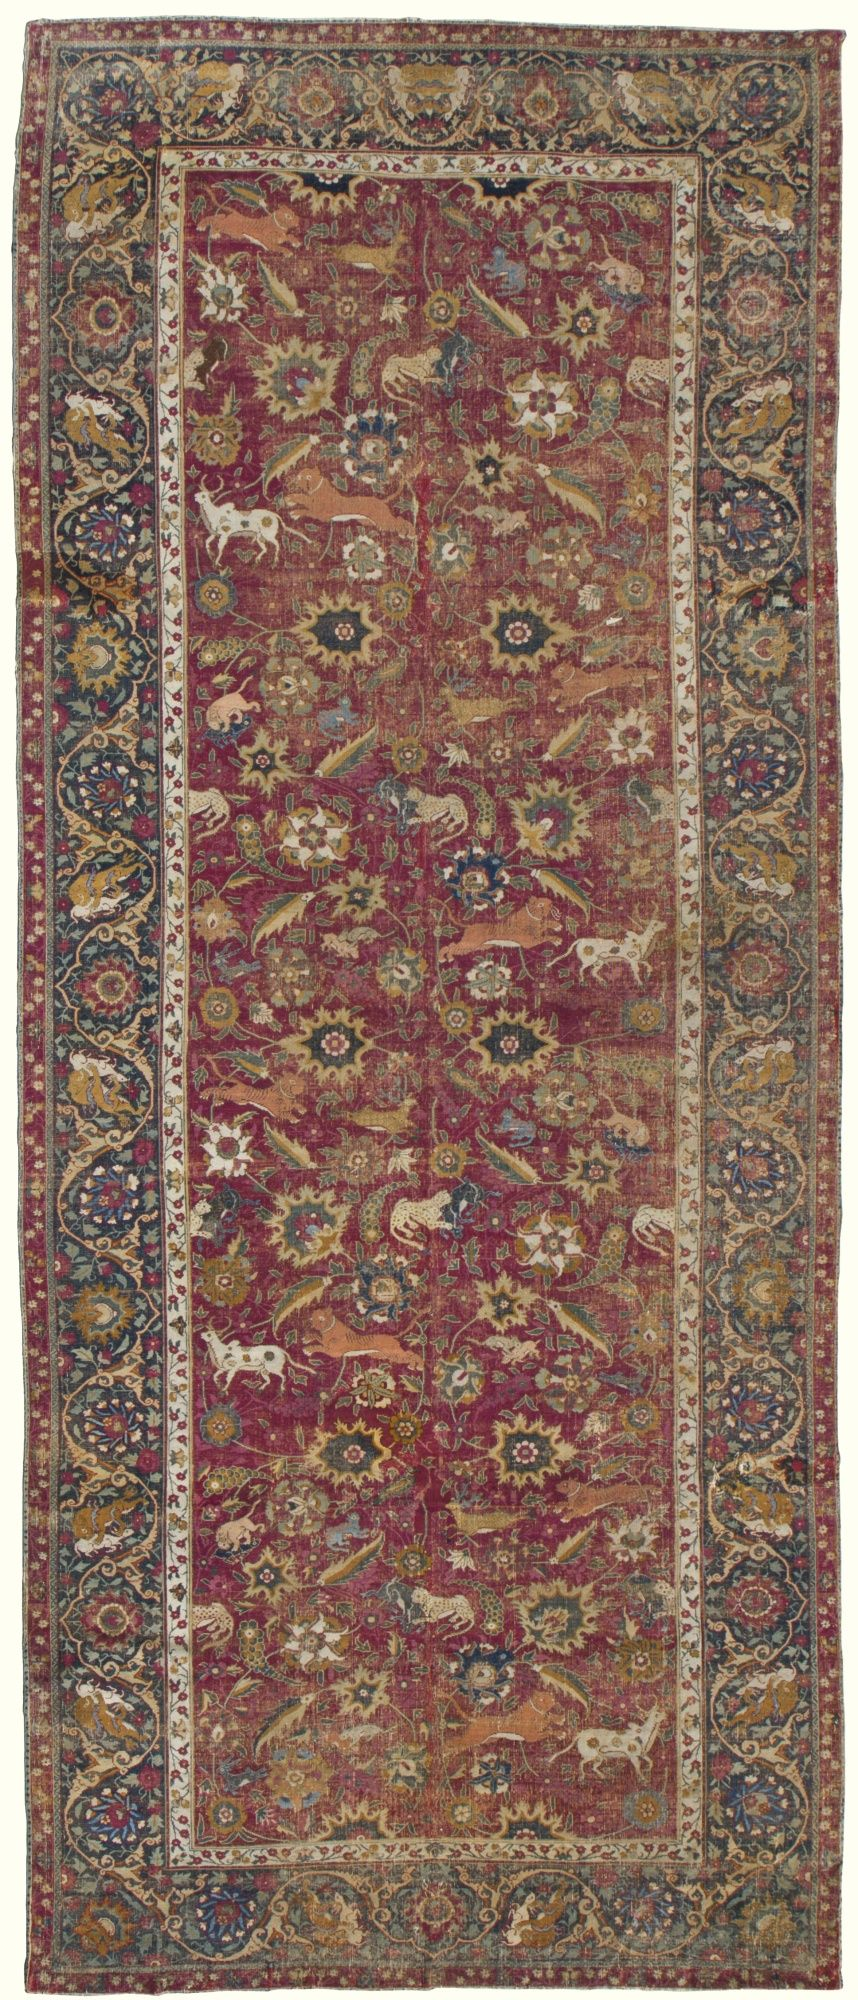 The Yerkes Remarque Mughal Hunting Carpet India Approximately 473 By 200cm 15ft 6in 6ft 7in First Half 17th Centur Carpet Rugs On Carpet Carpet Fabric